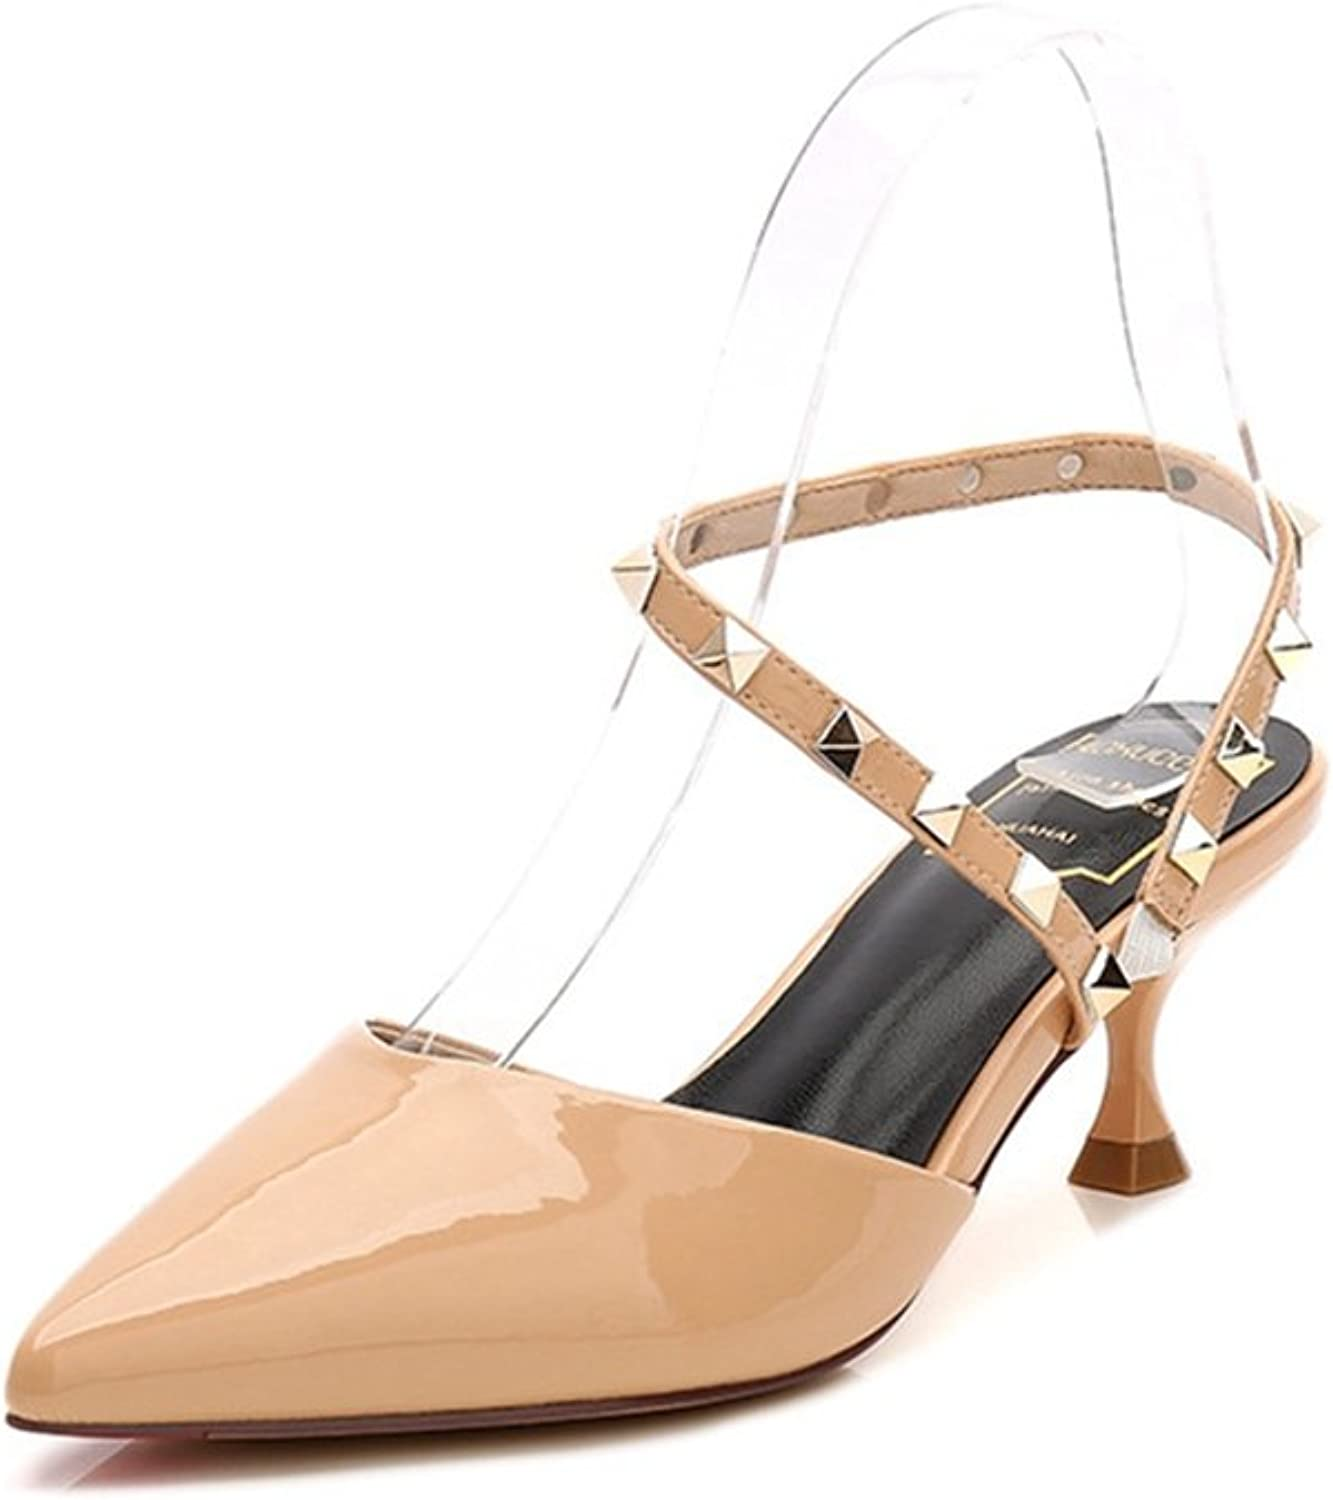 Zarbrina Heeled Sandals for Women Pointed Toe Rivet Strappy Slingback shoes T-Strap Ankle Heels Dress Wear